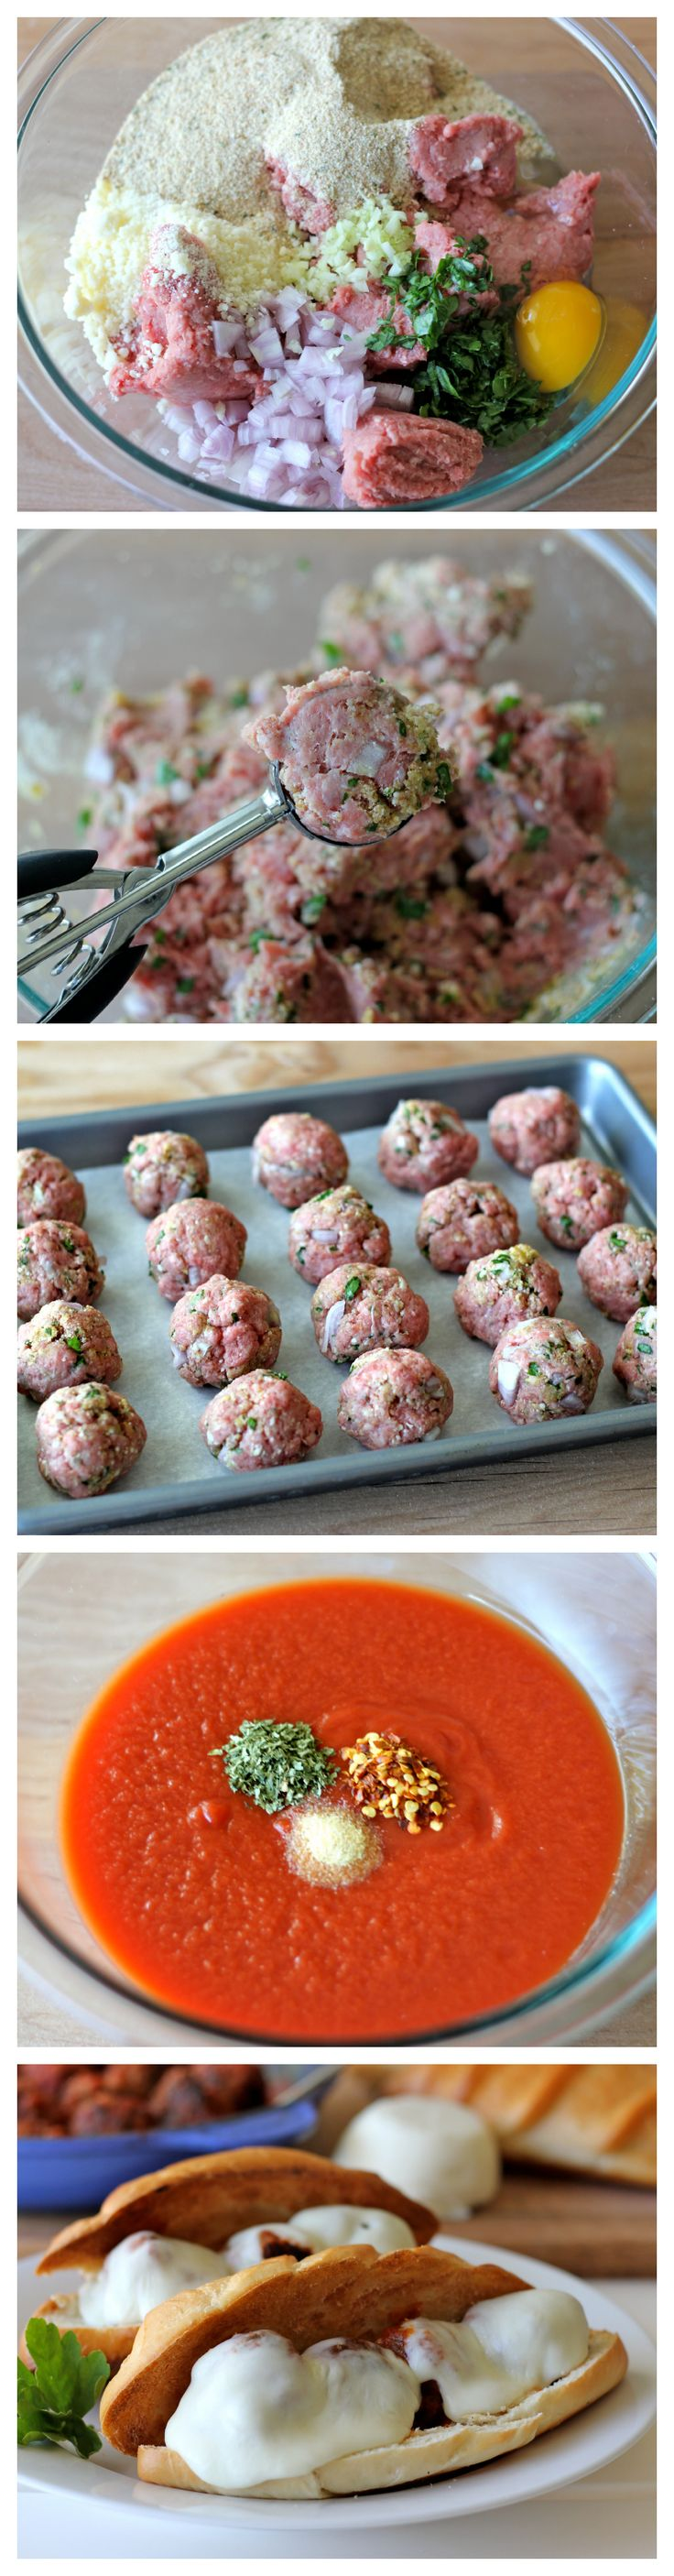 Italian Meatball Sandwiches - It's so much better making meatball subs at home - that way you don't have to skimp on the cheesy goodness!